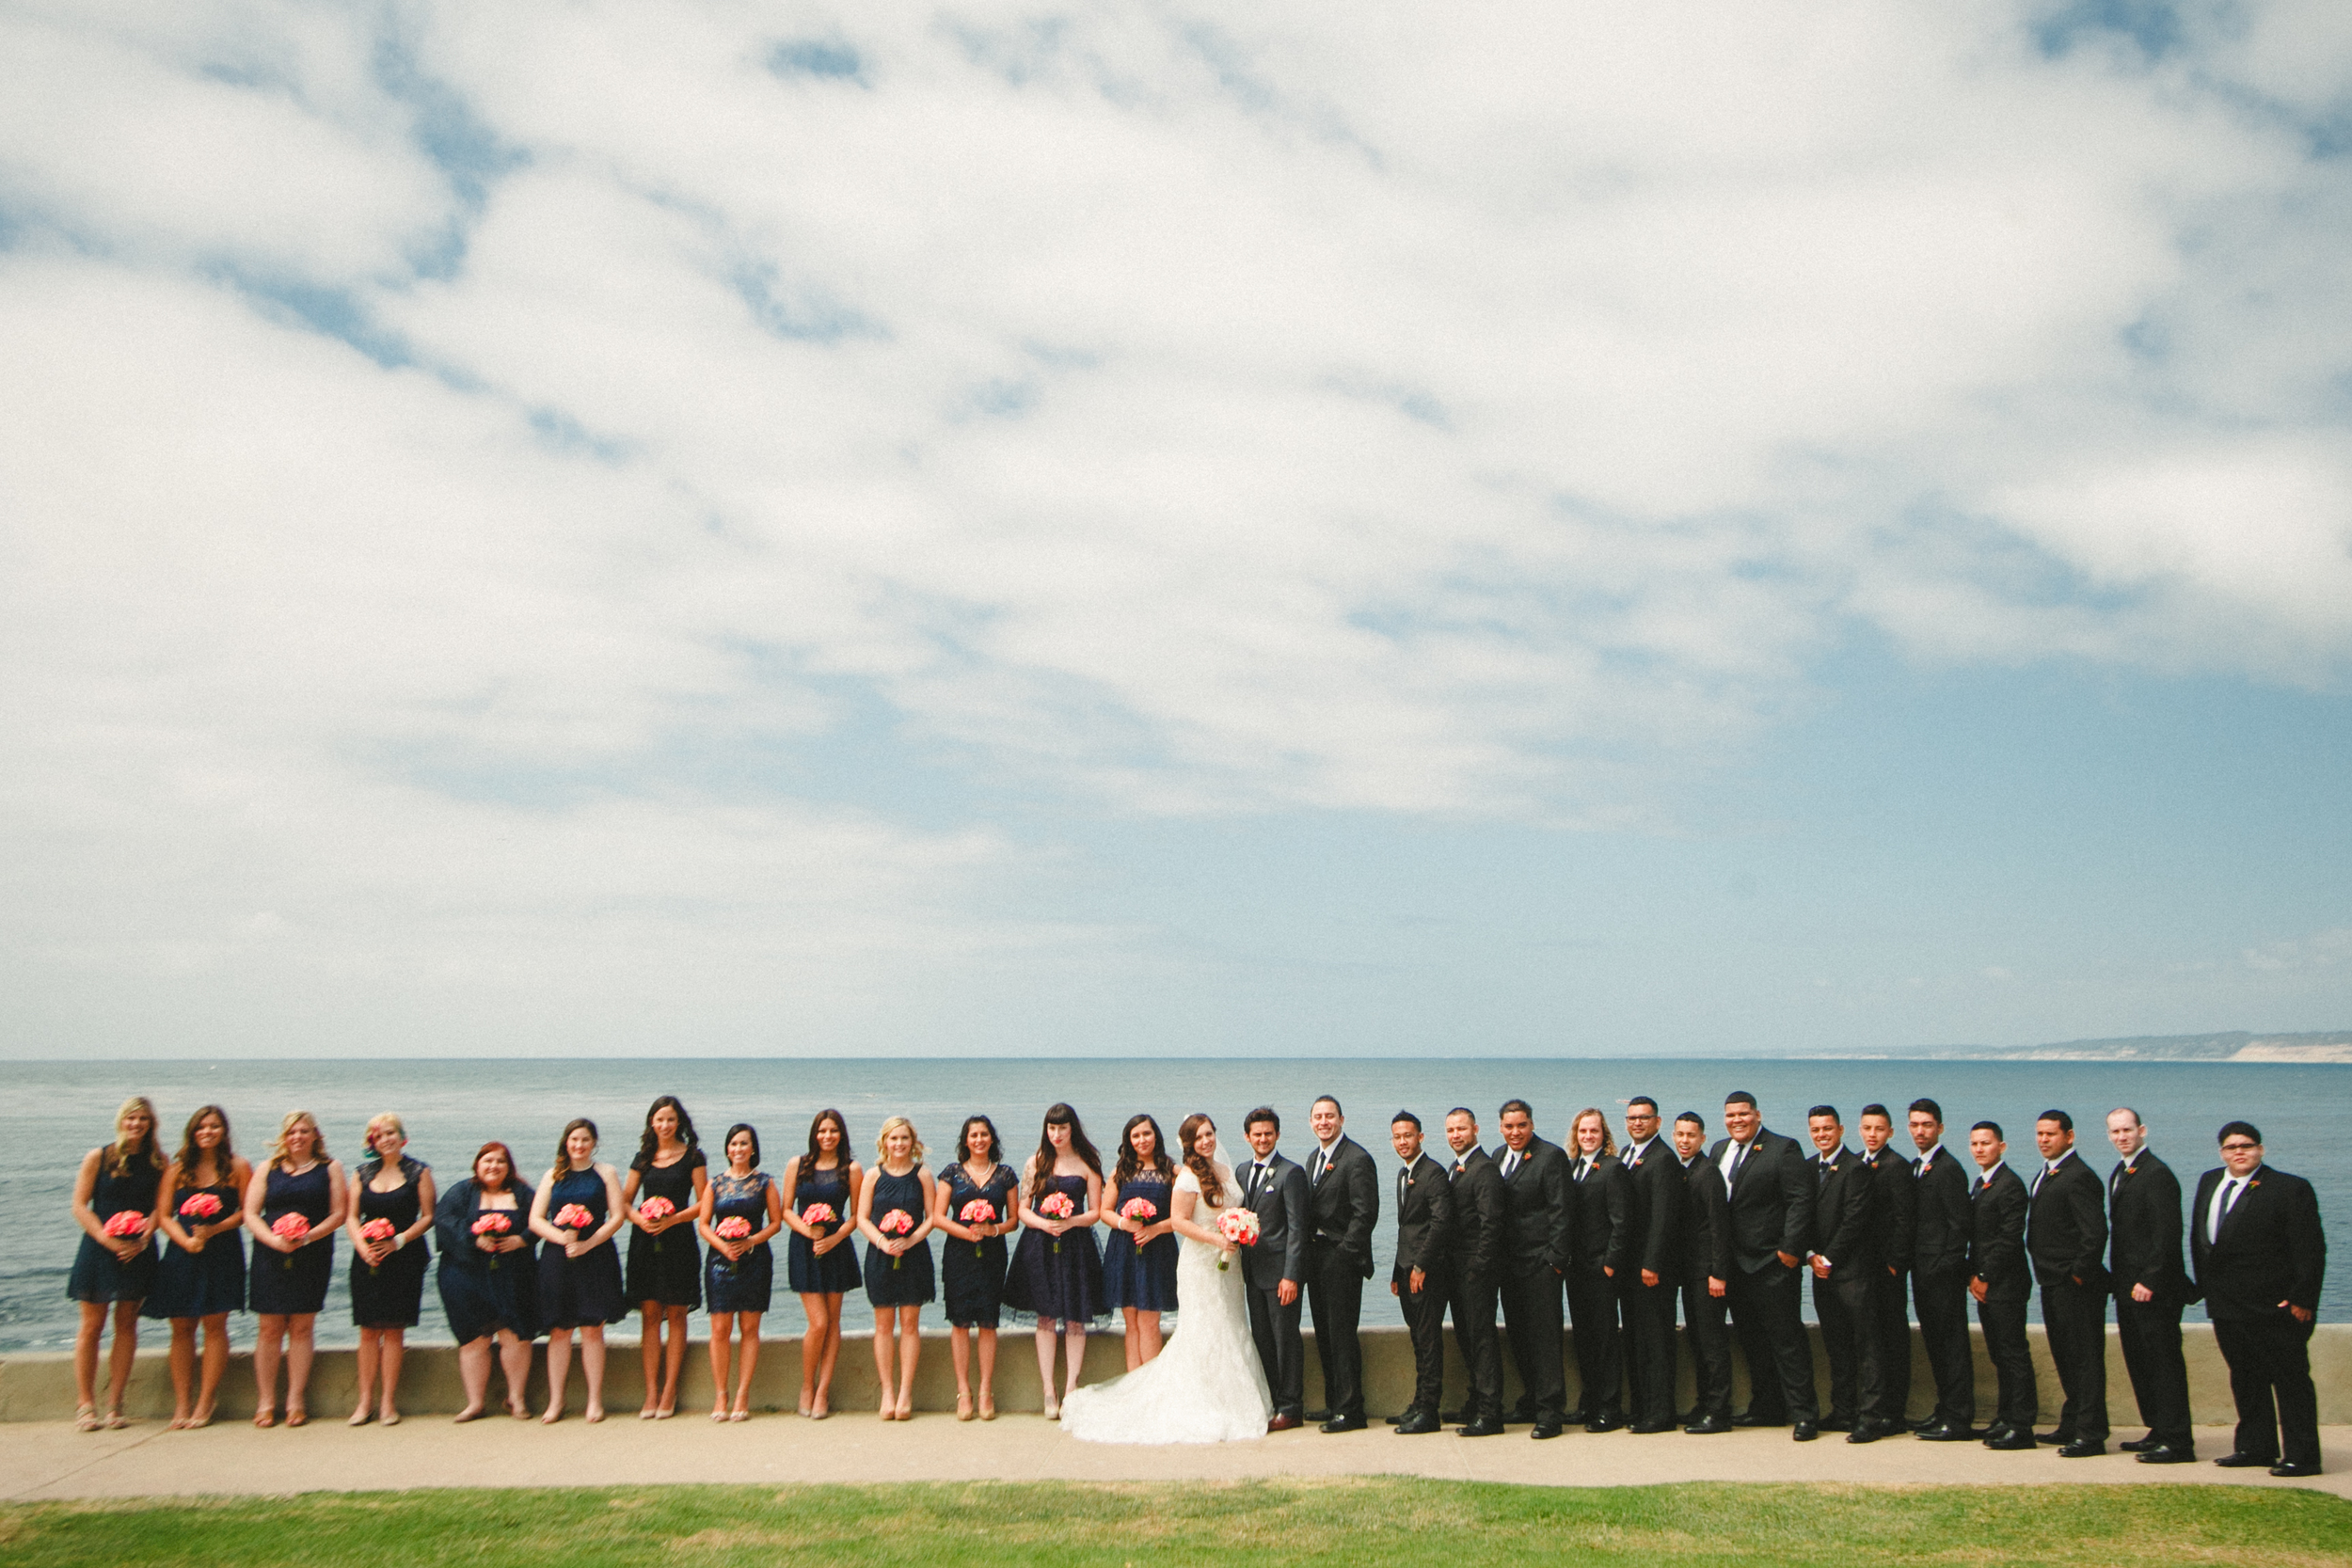 breanne and kevin's wedding-209.jpg